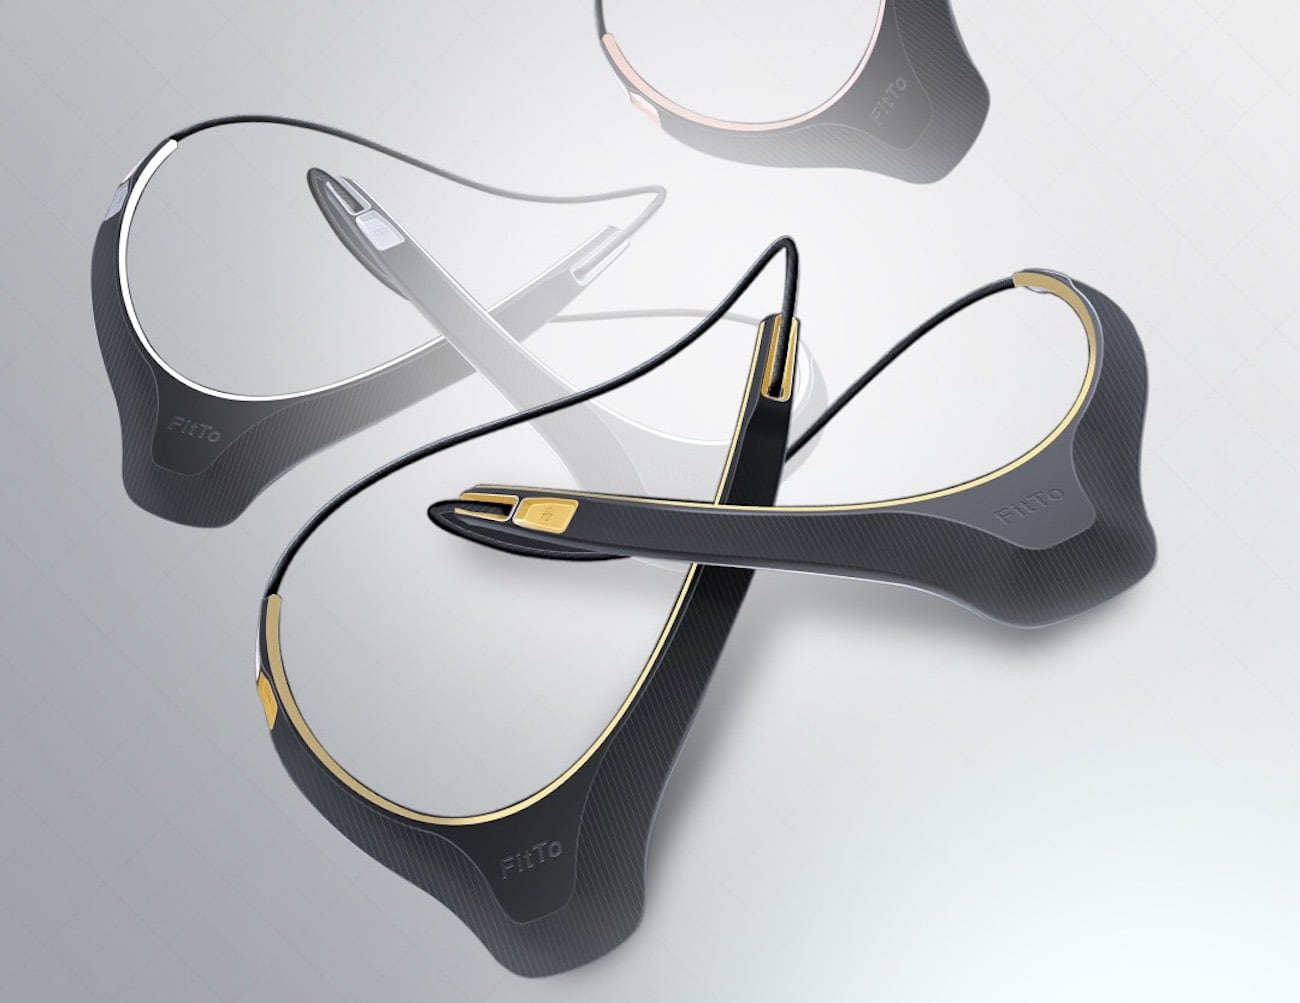 FitTo Vibrating Weight Loss Device